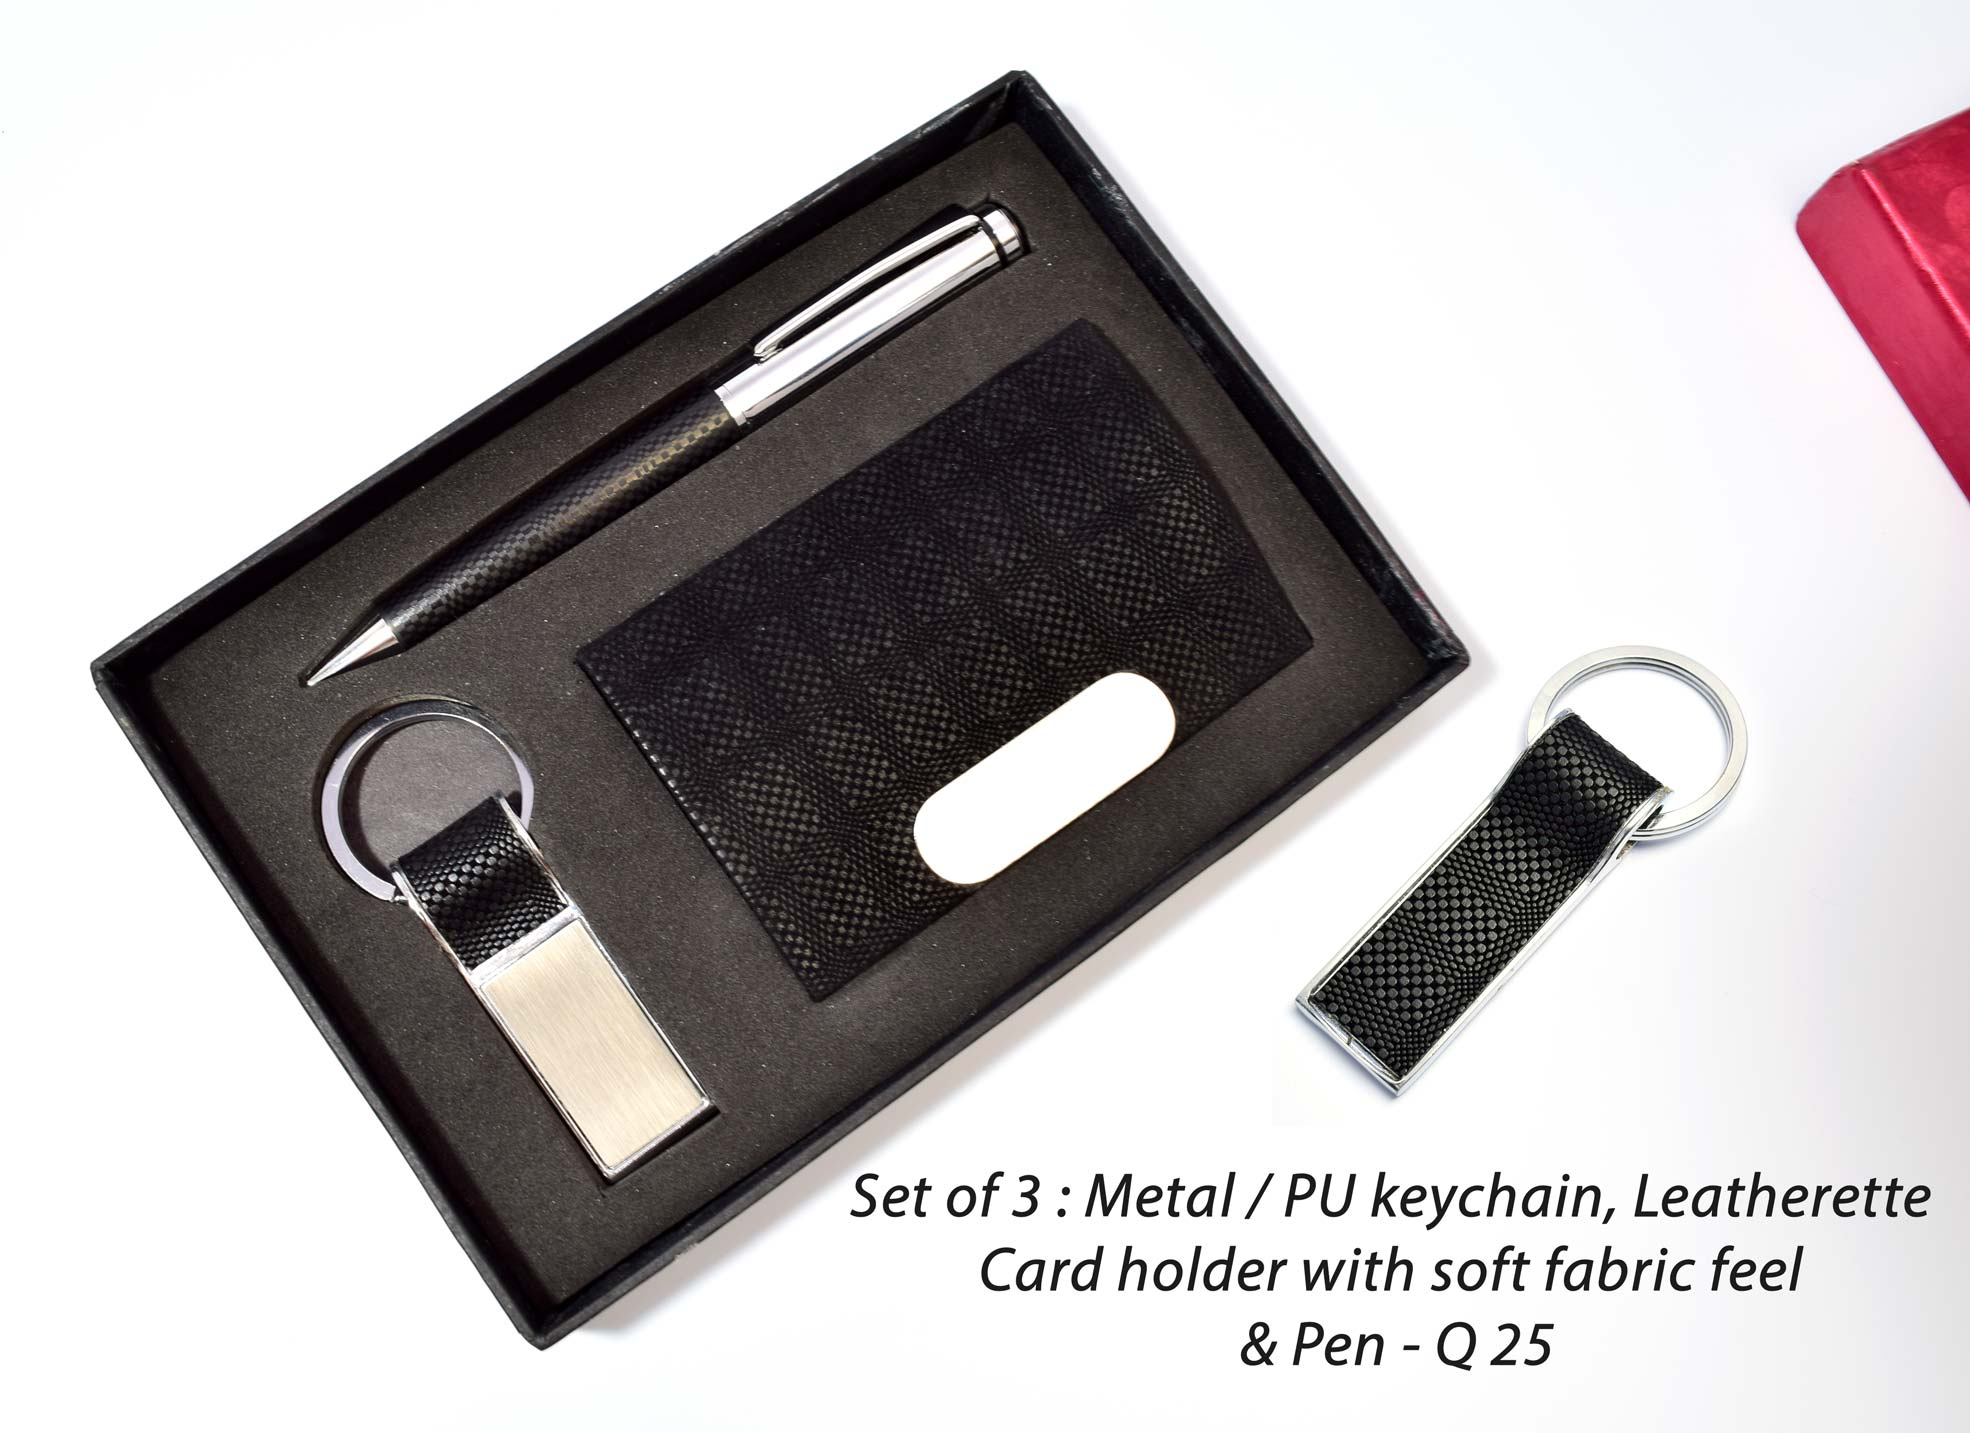 Q25 - Set of 3 :- Metal /PU key chain, Leatherette Card holder with soft fabric feel & pen